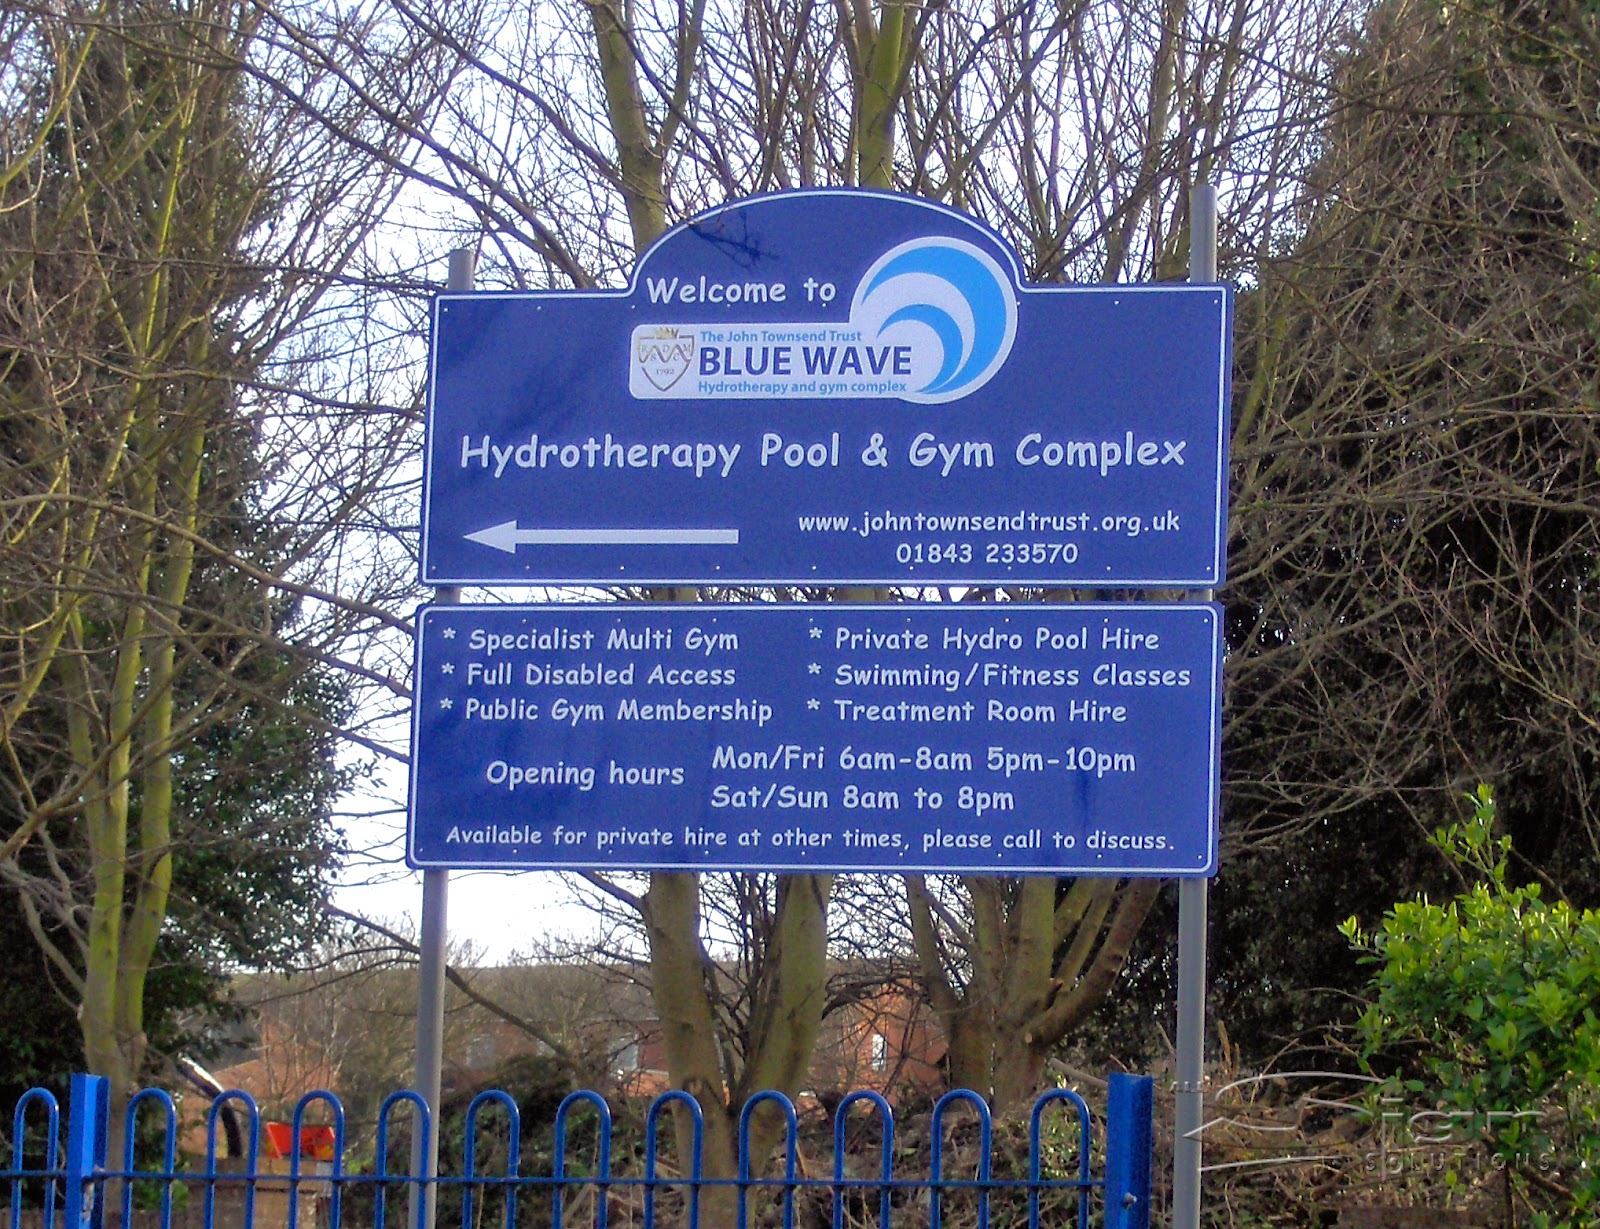 John Townsend Trust Blue Wave Hydrotherapy Pool And Gym